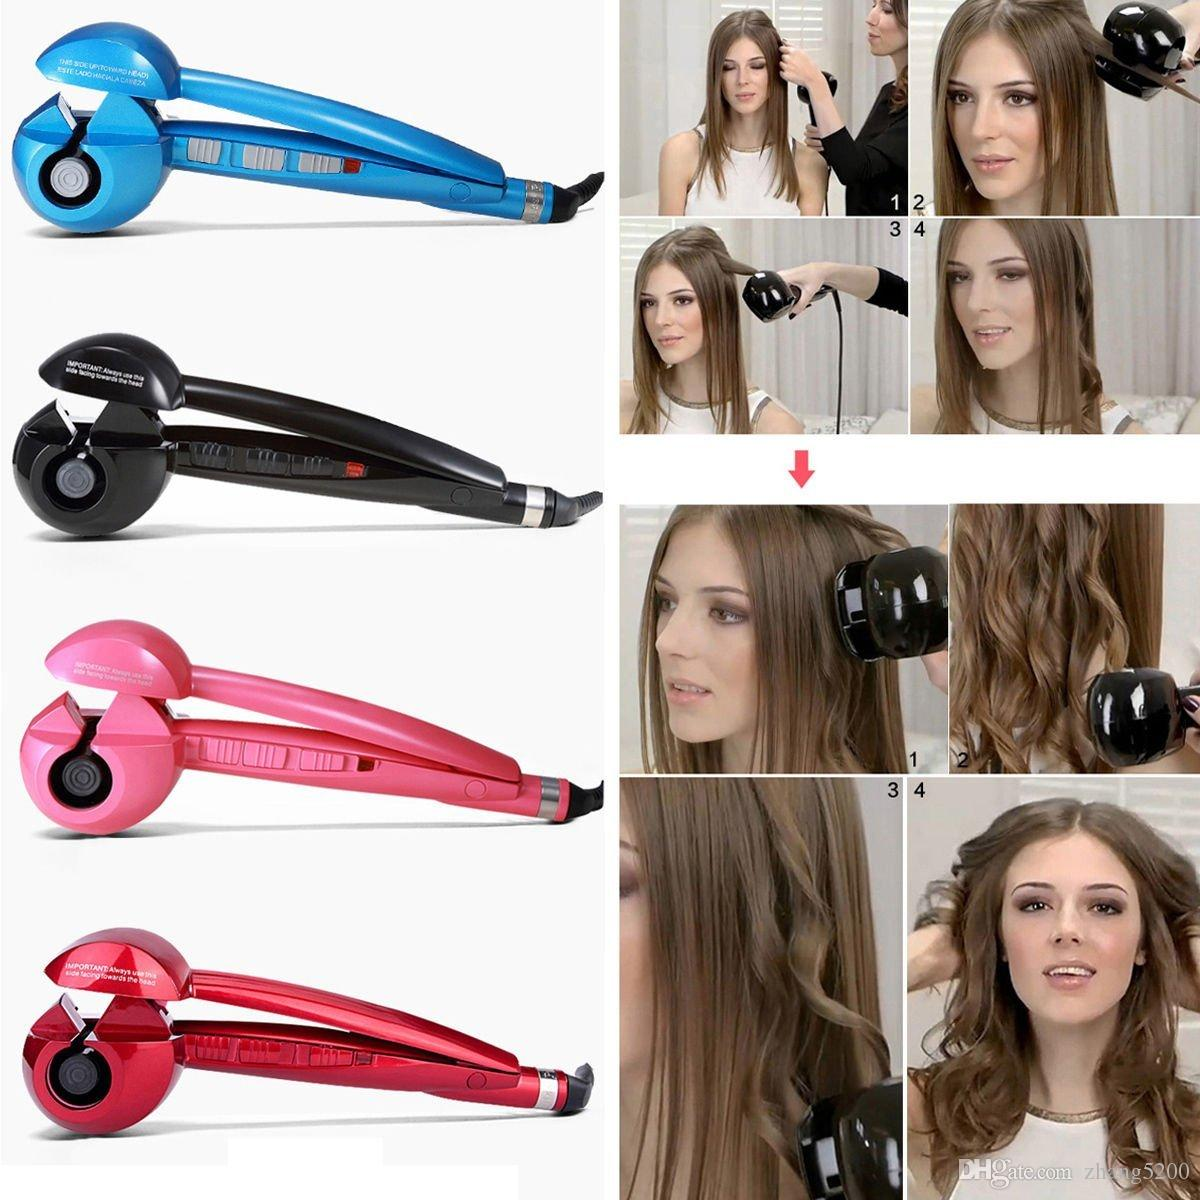 Heated hair rollers: customer reviews. Therming hair Remington: reviews 85